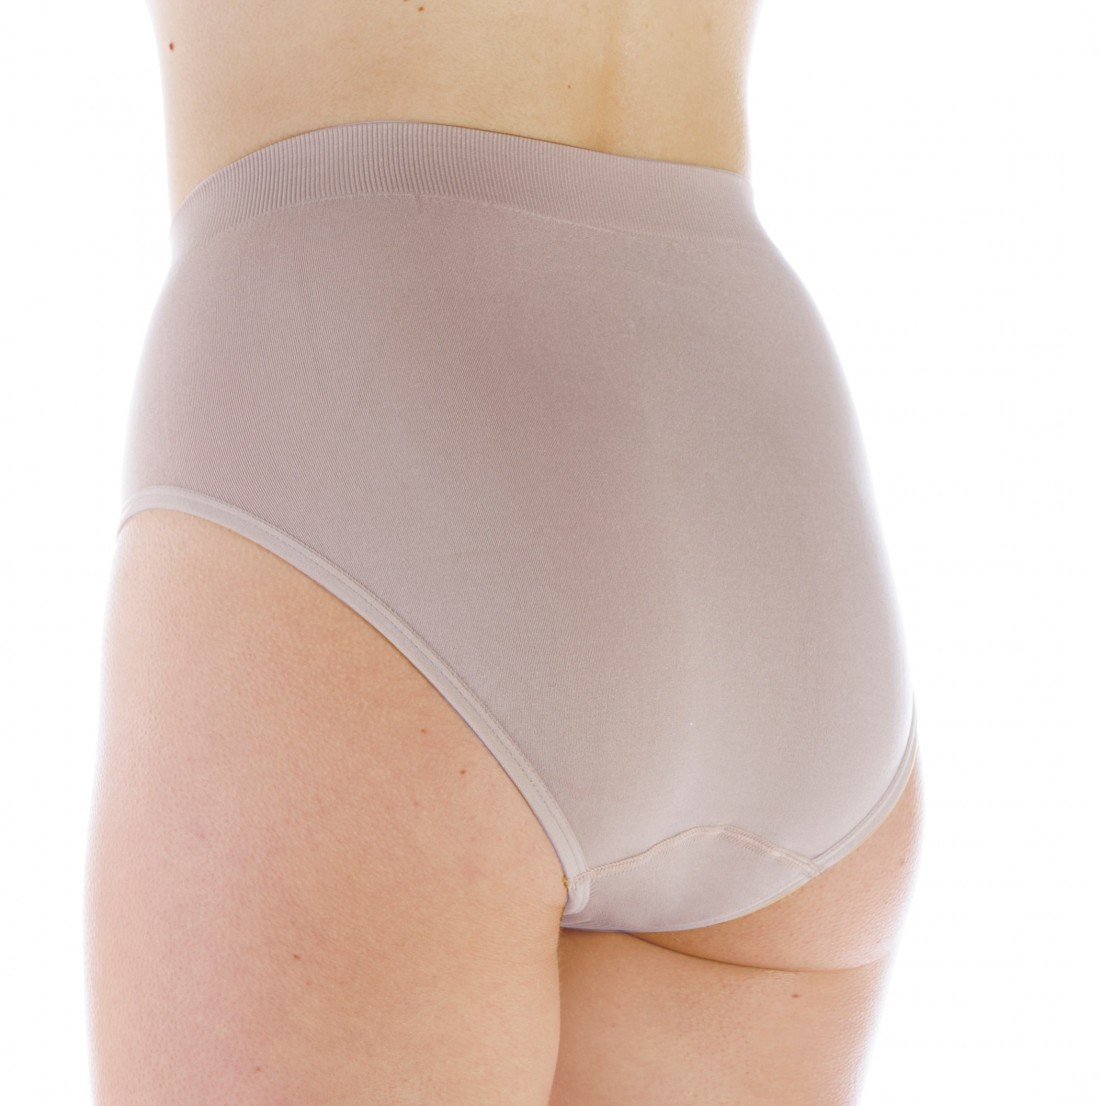 Seamless Panties - Wearever S100 - Light Absorbency (Wearever_Products)